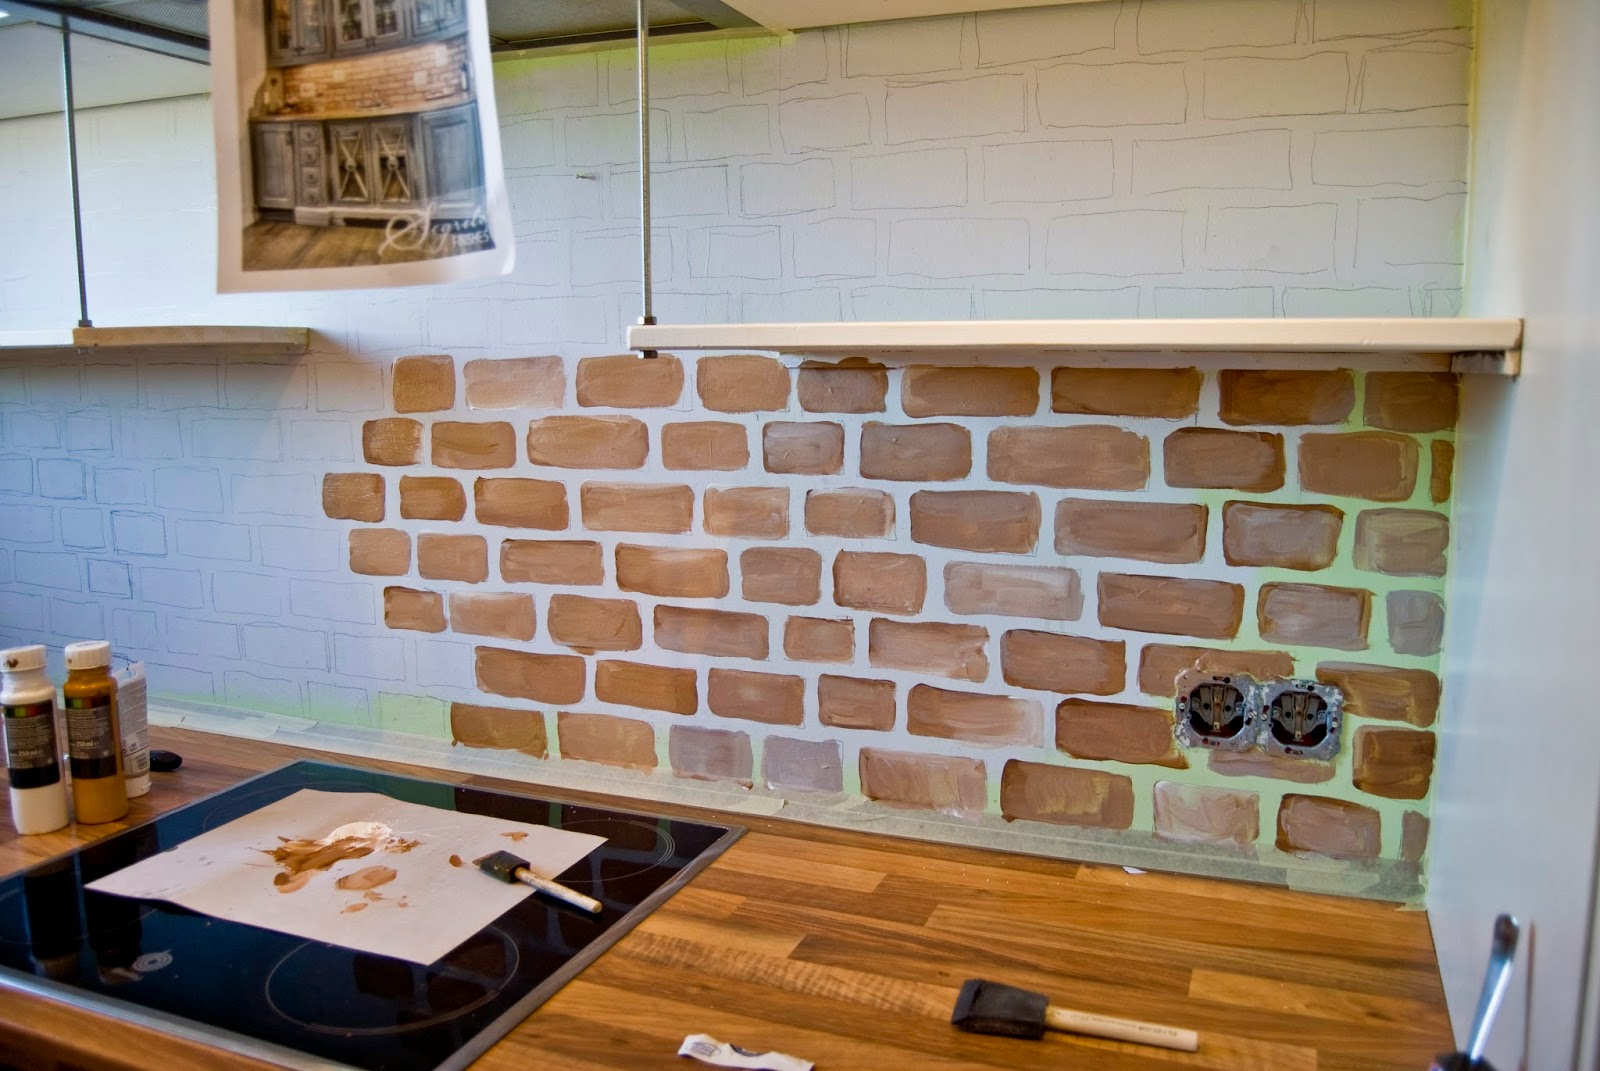 Remodelaholic | Tiny Kitchen Renovation with Faux Painted ... on ideas for decorating brick, tips for painting brick, ideas for stucco, ideas for owl diaper cake, ideas for brick fireplace makeover, ideas for old window, painting your fireplace brick, ideas for landscaping brick,